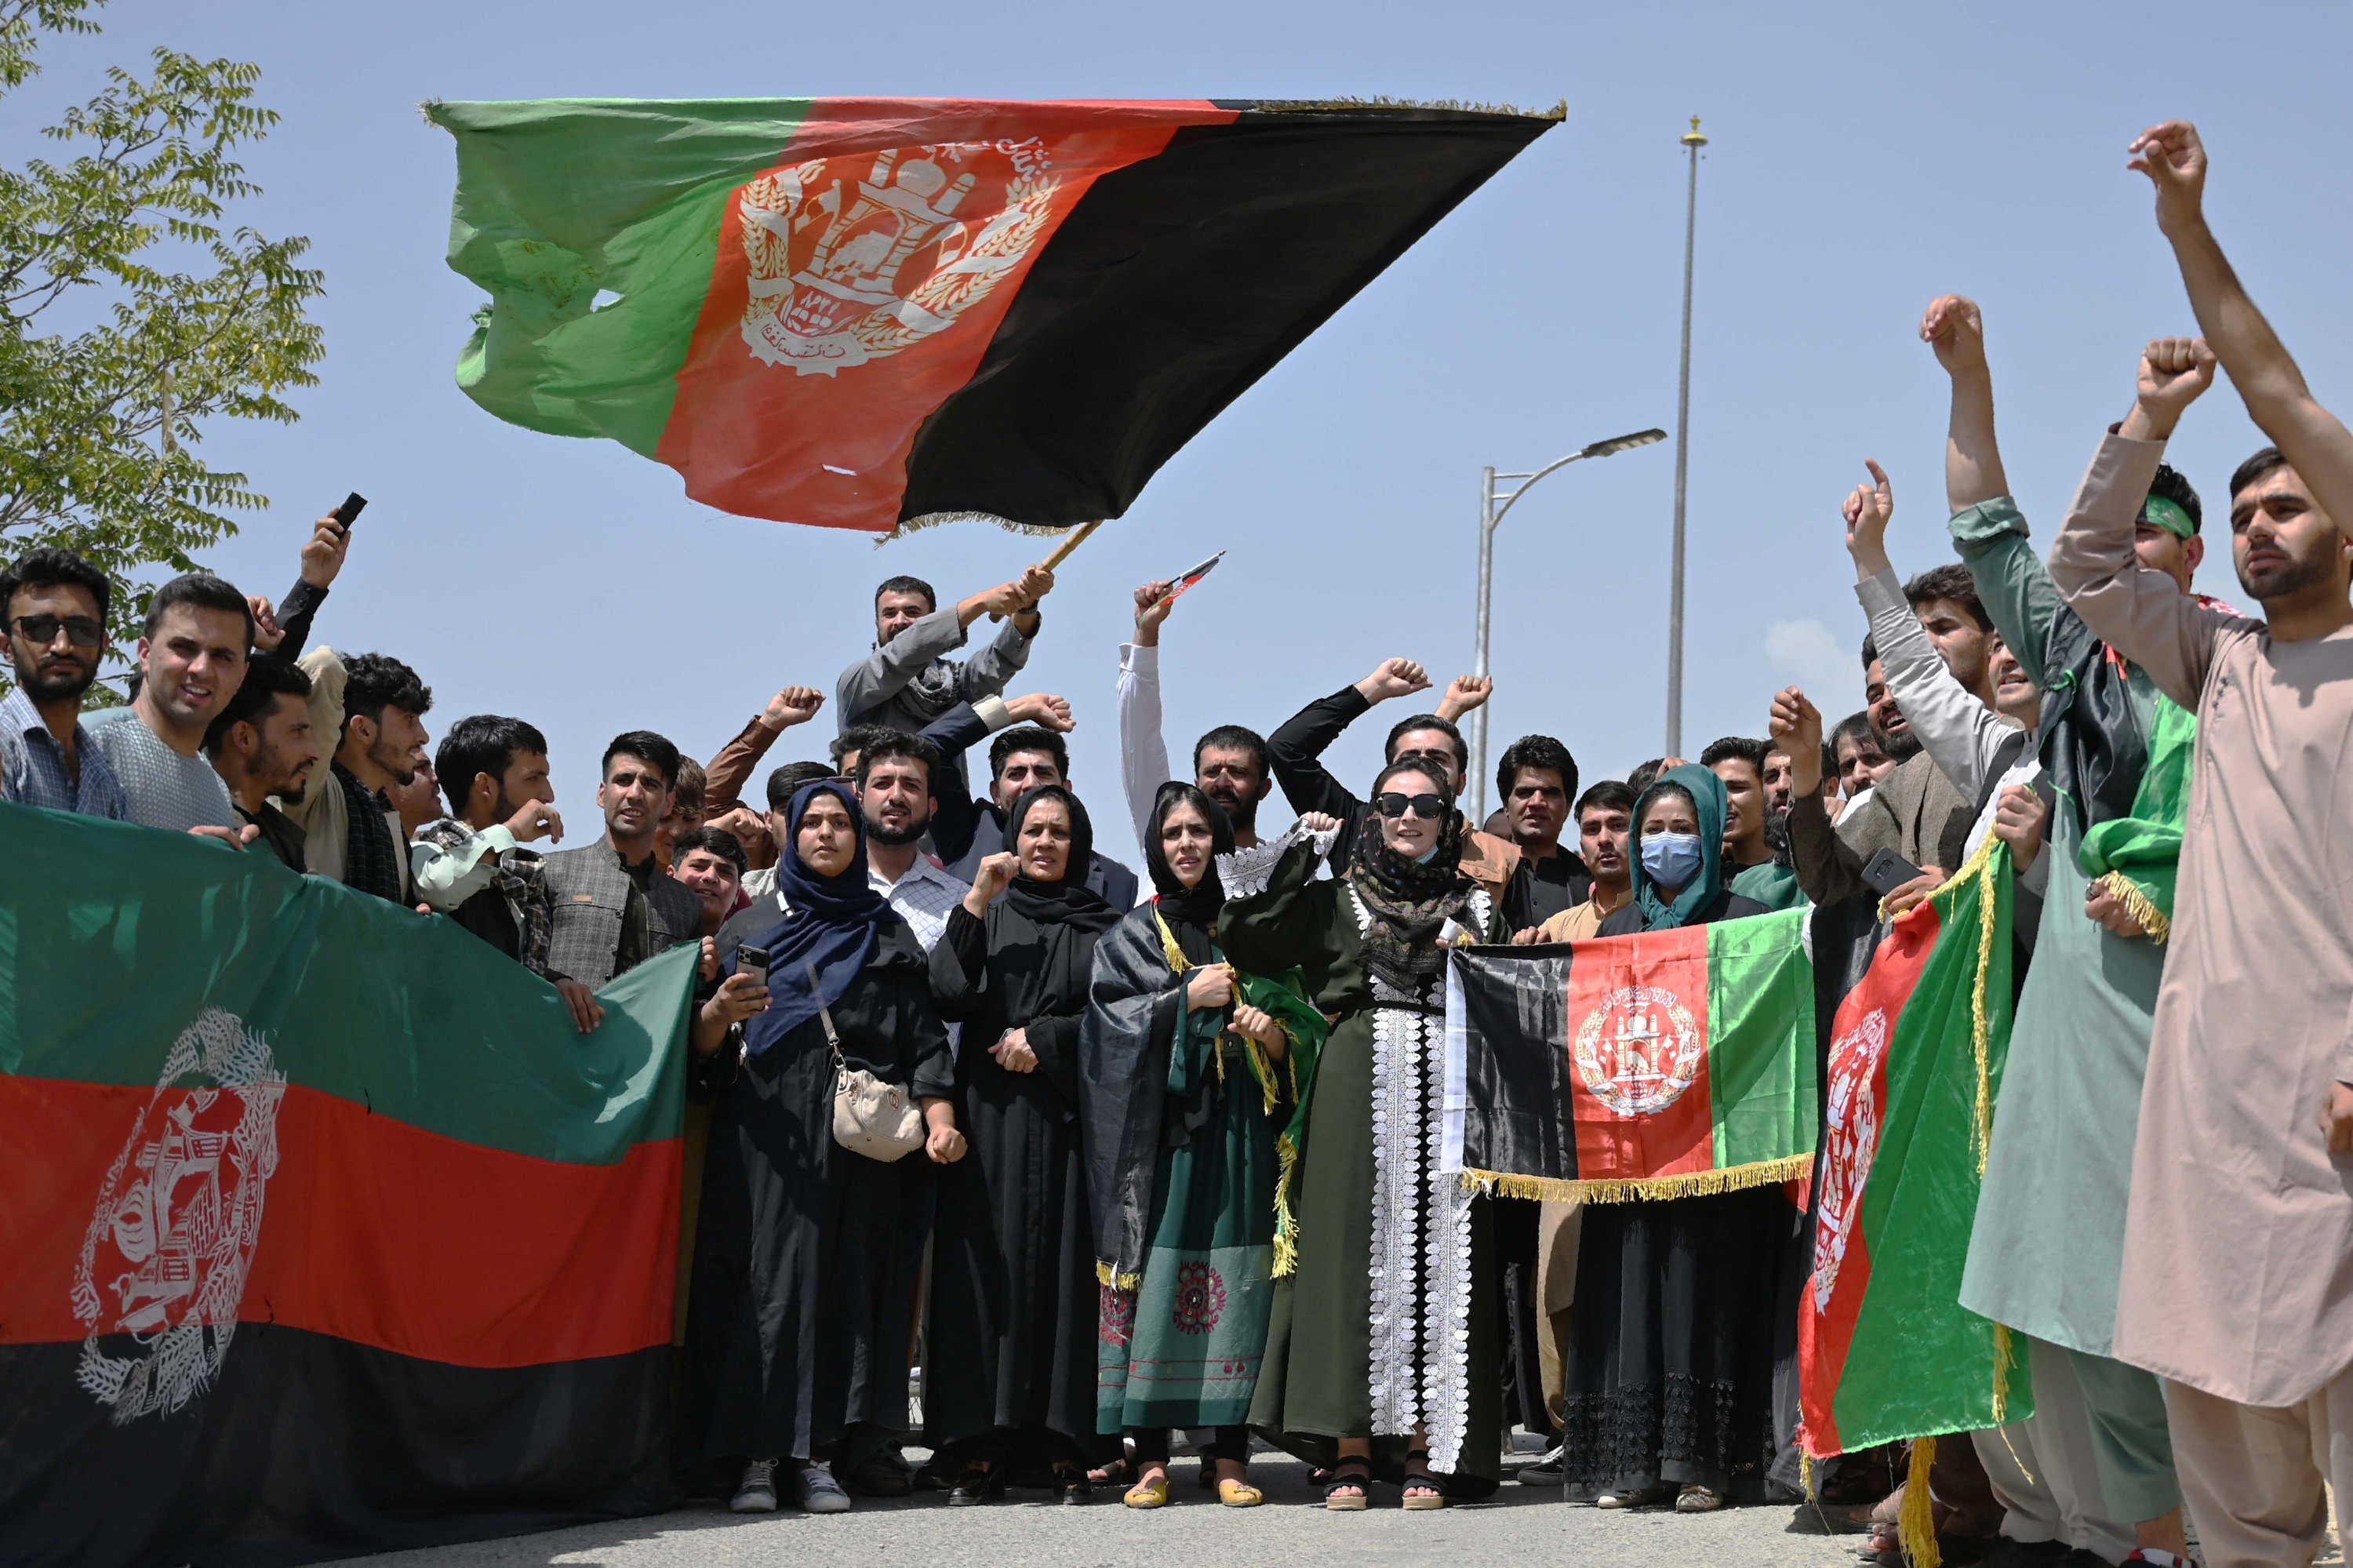 Afghans celebrate the 102th Independence Day of Afghanistan with the national flag in Kabul, Afghanistan, Aug. 19, 2021. (AFP Photo)